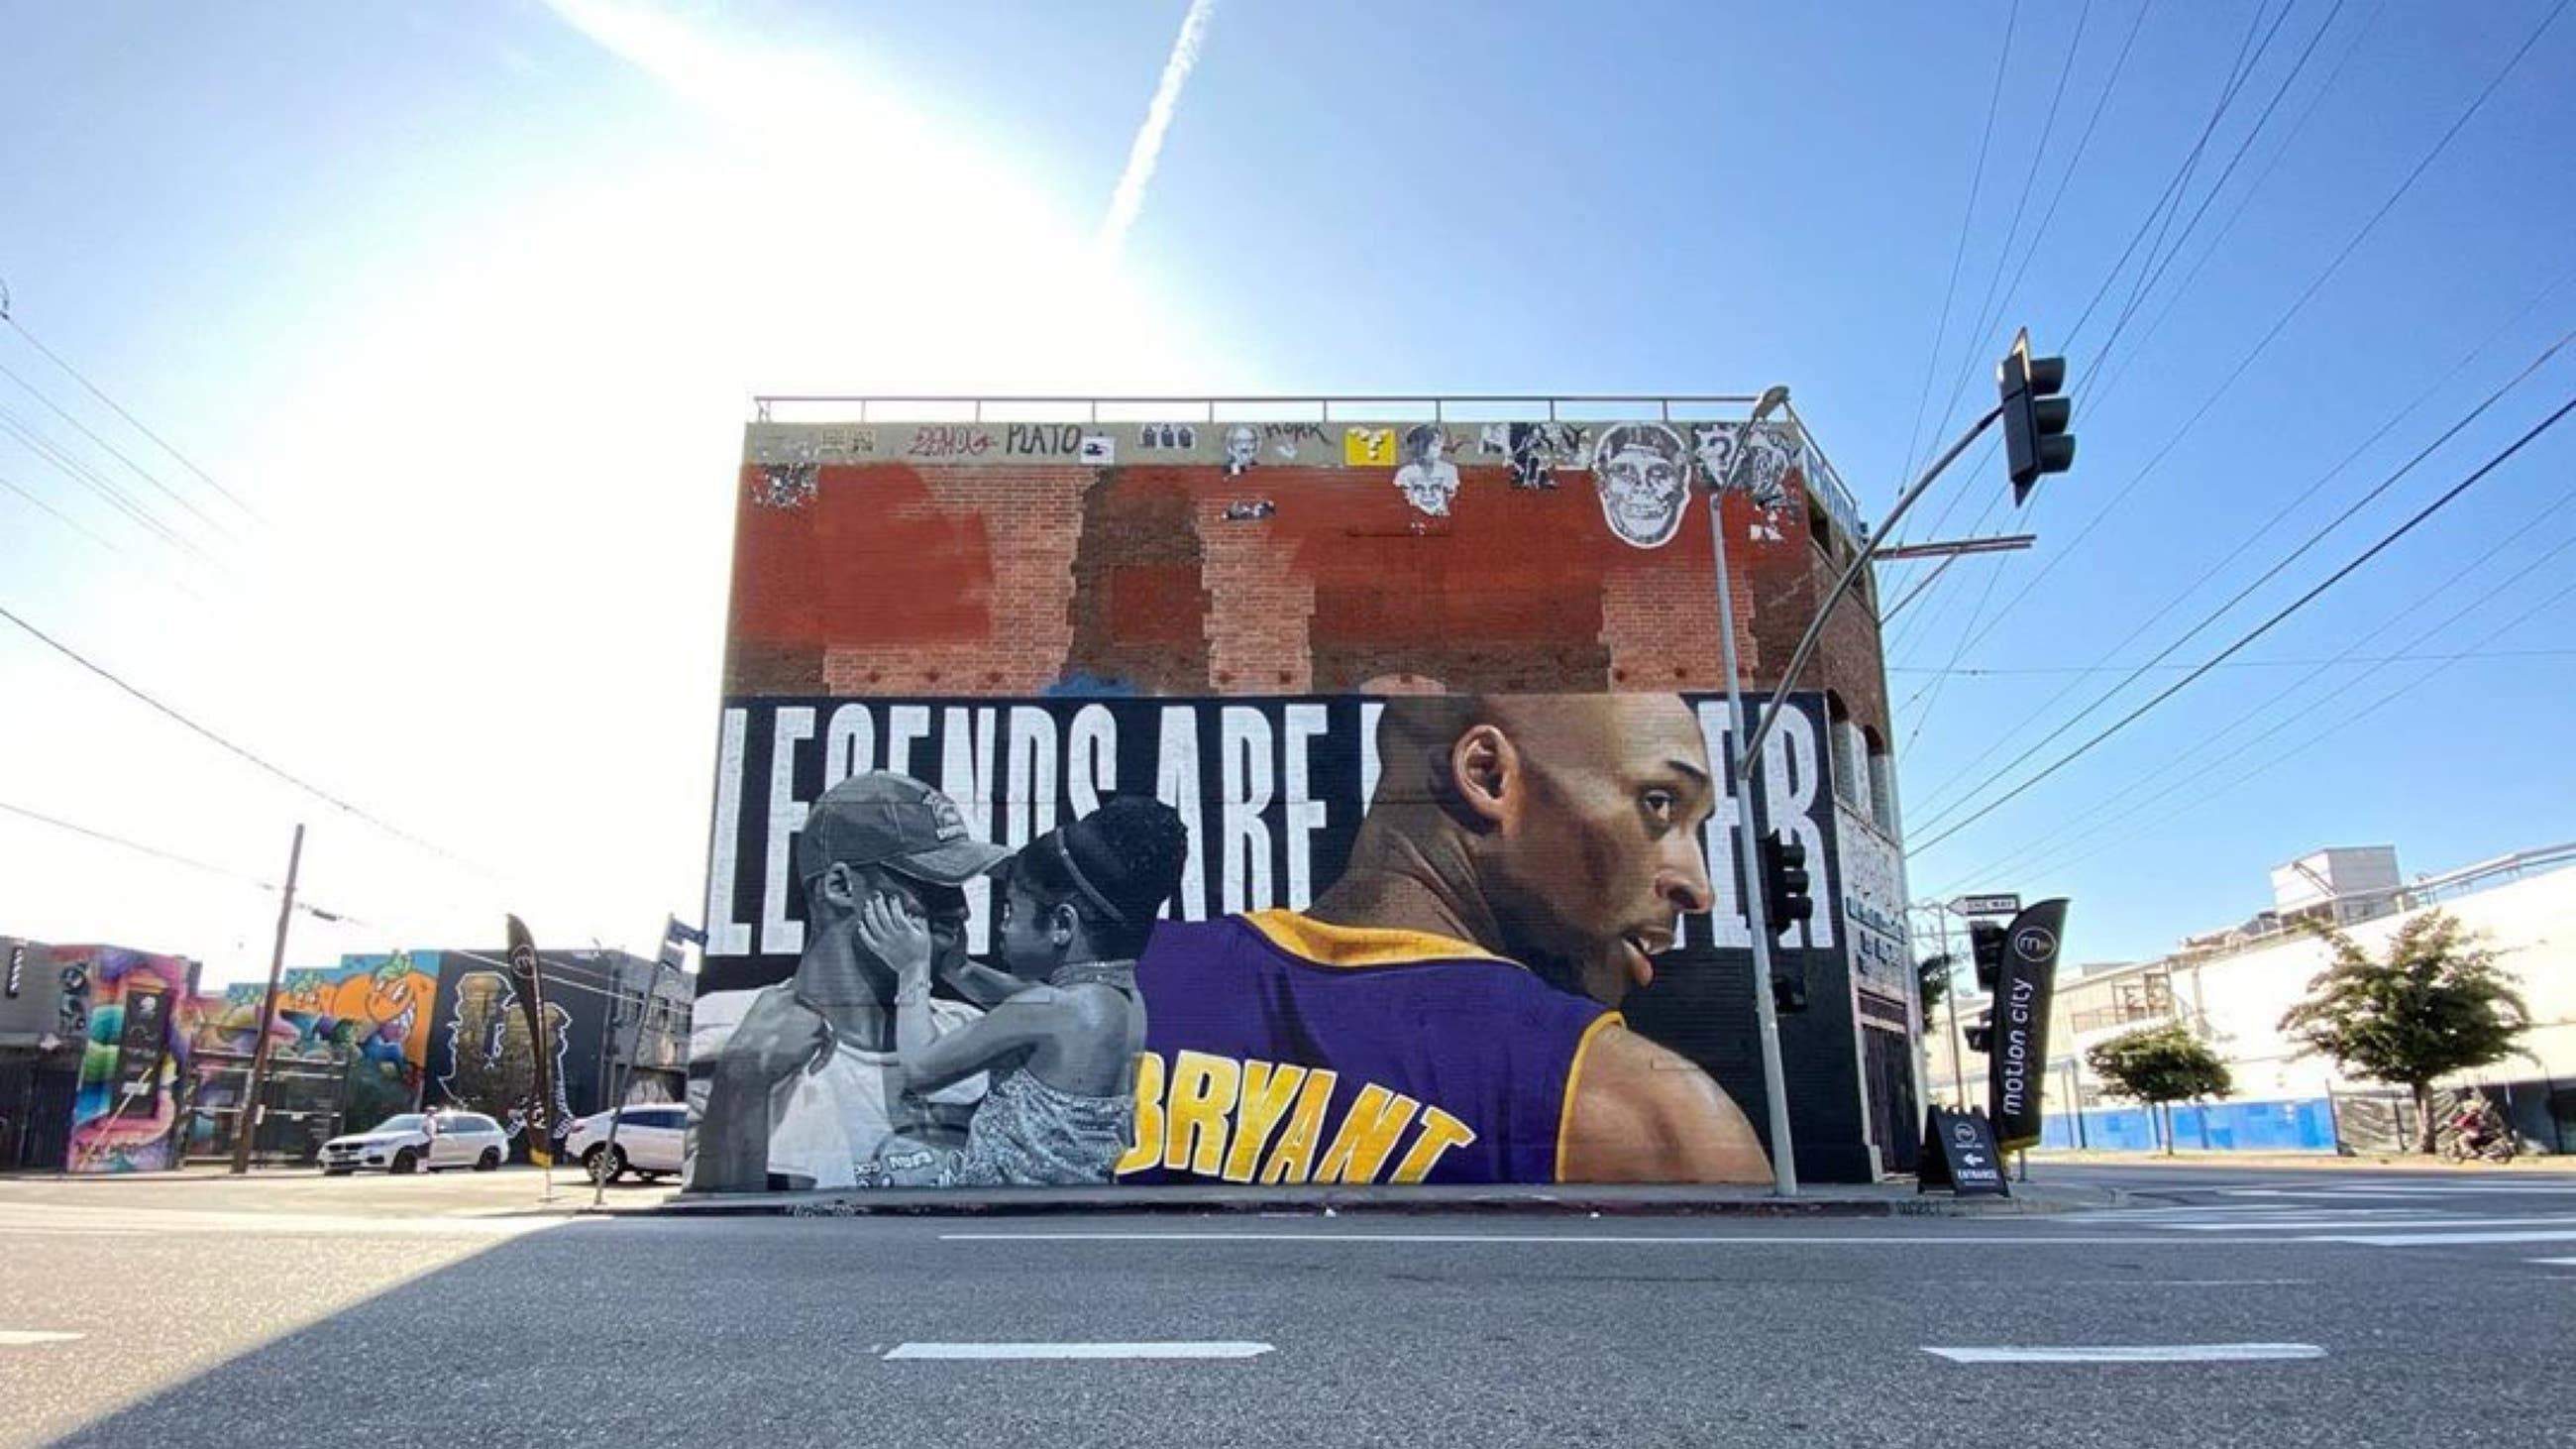 Kobe and Gianna Bryant mural by Chris Chanyang Shim at The Container Yard